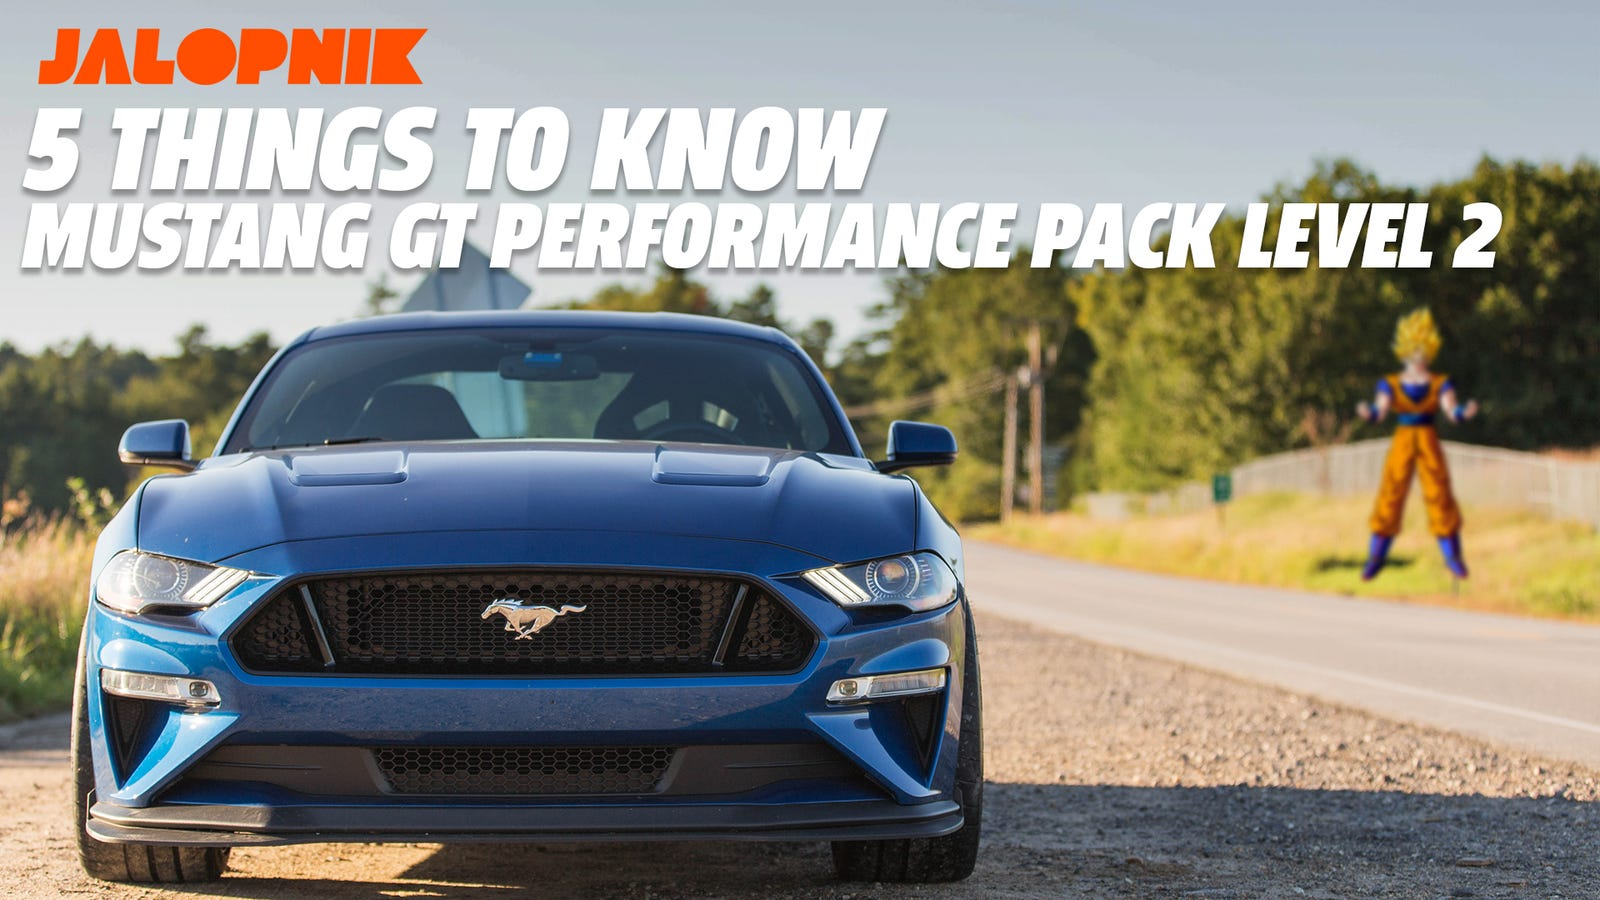 2018 ford mustang gt performance pack level 2 five things you should know